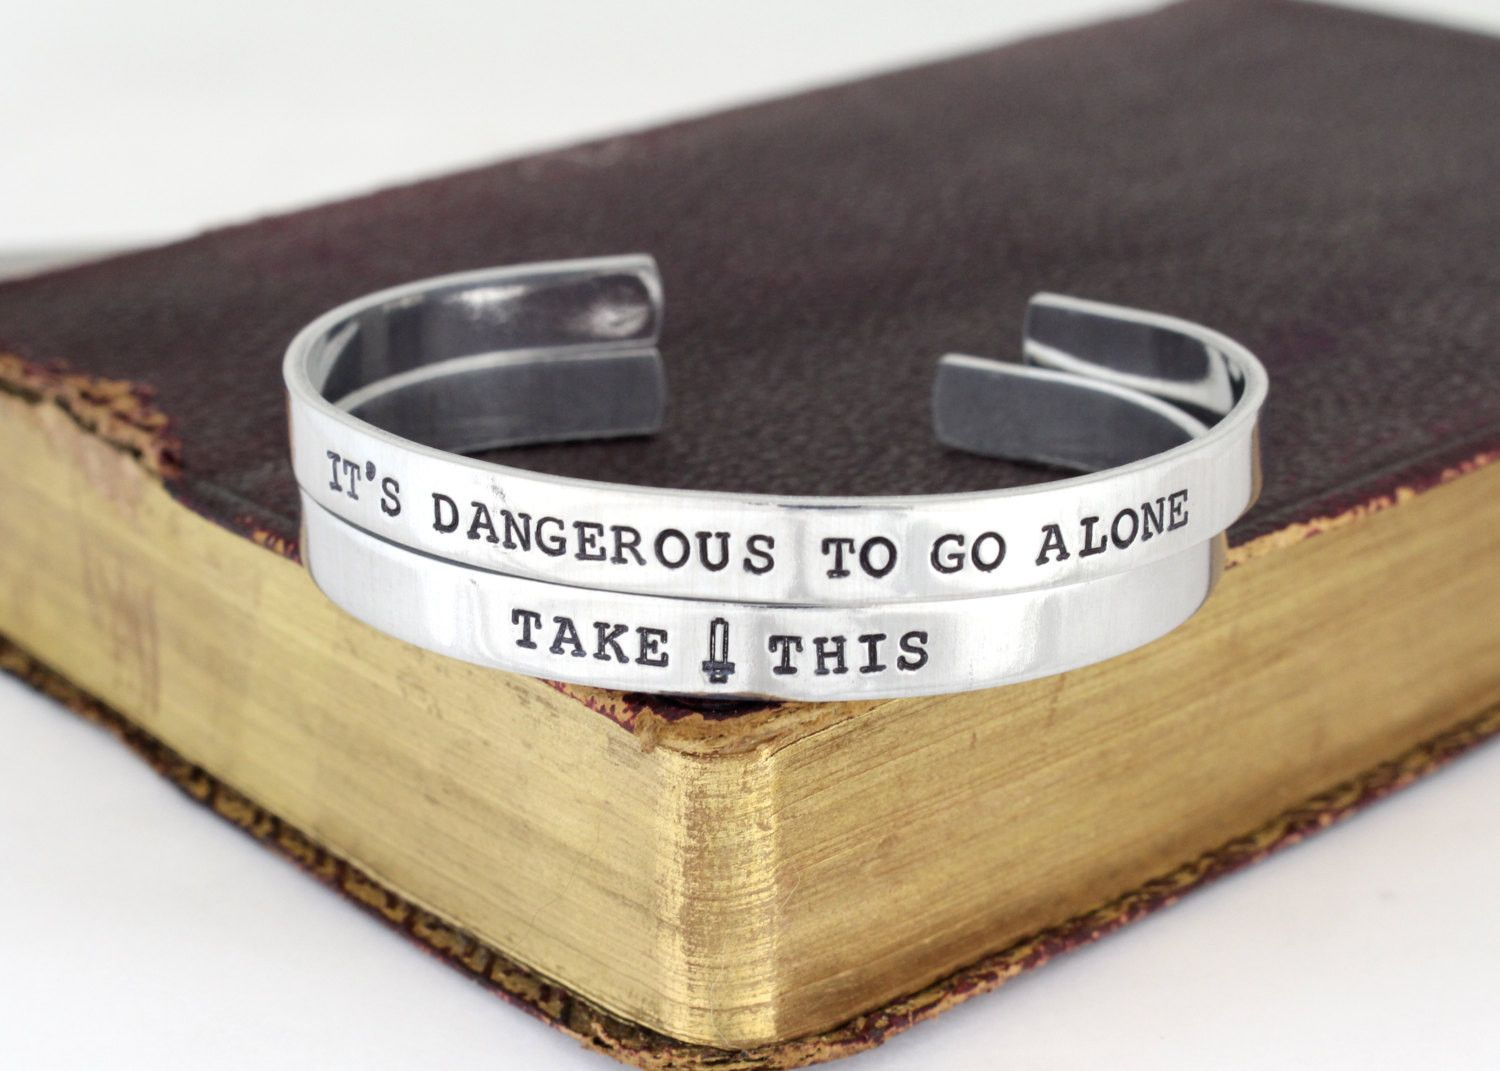 "This listing is for a set of 2 bracelets and is great for best friends or couples who want to show their bond. One bracelet reads ""It's Dangerous to go Alone"" and the other says ""Take This"" with a pix"